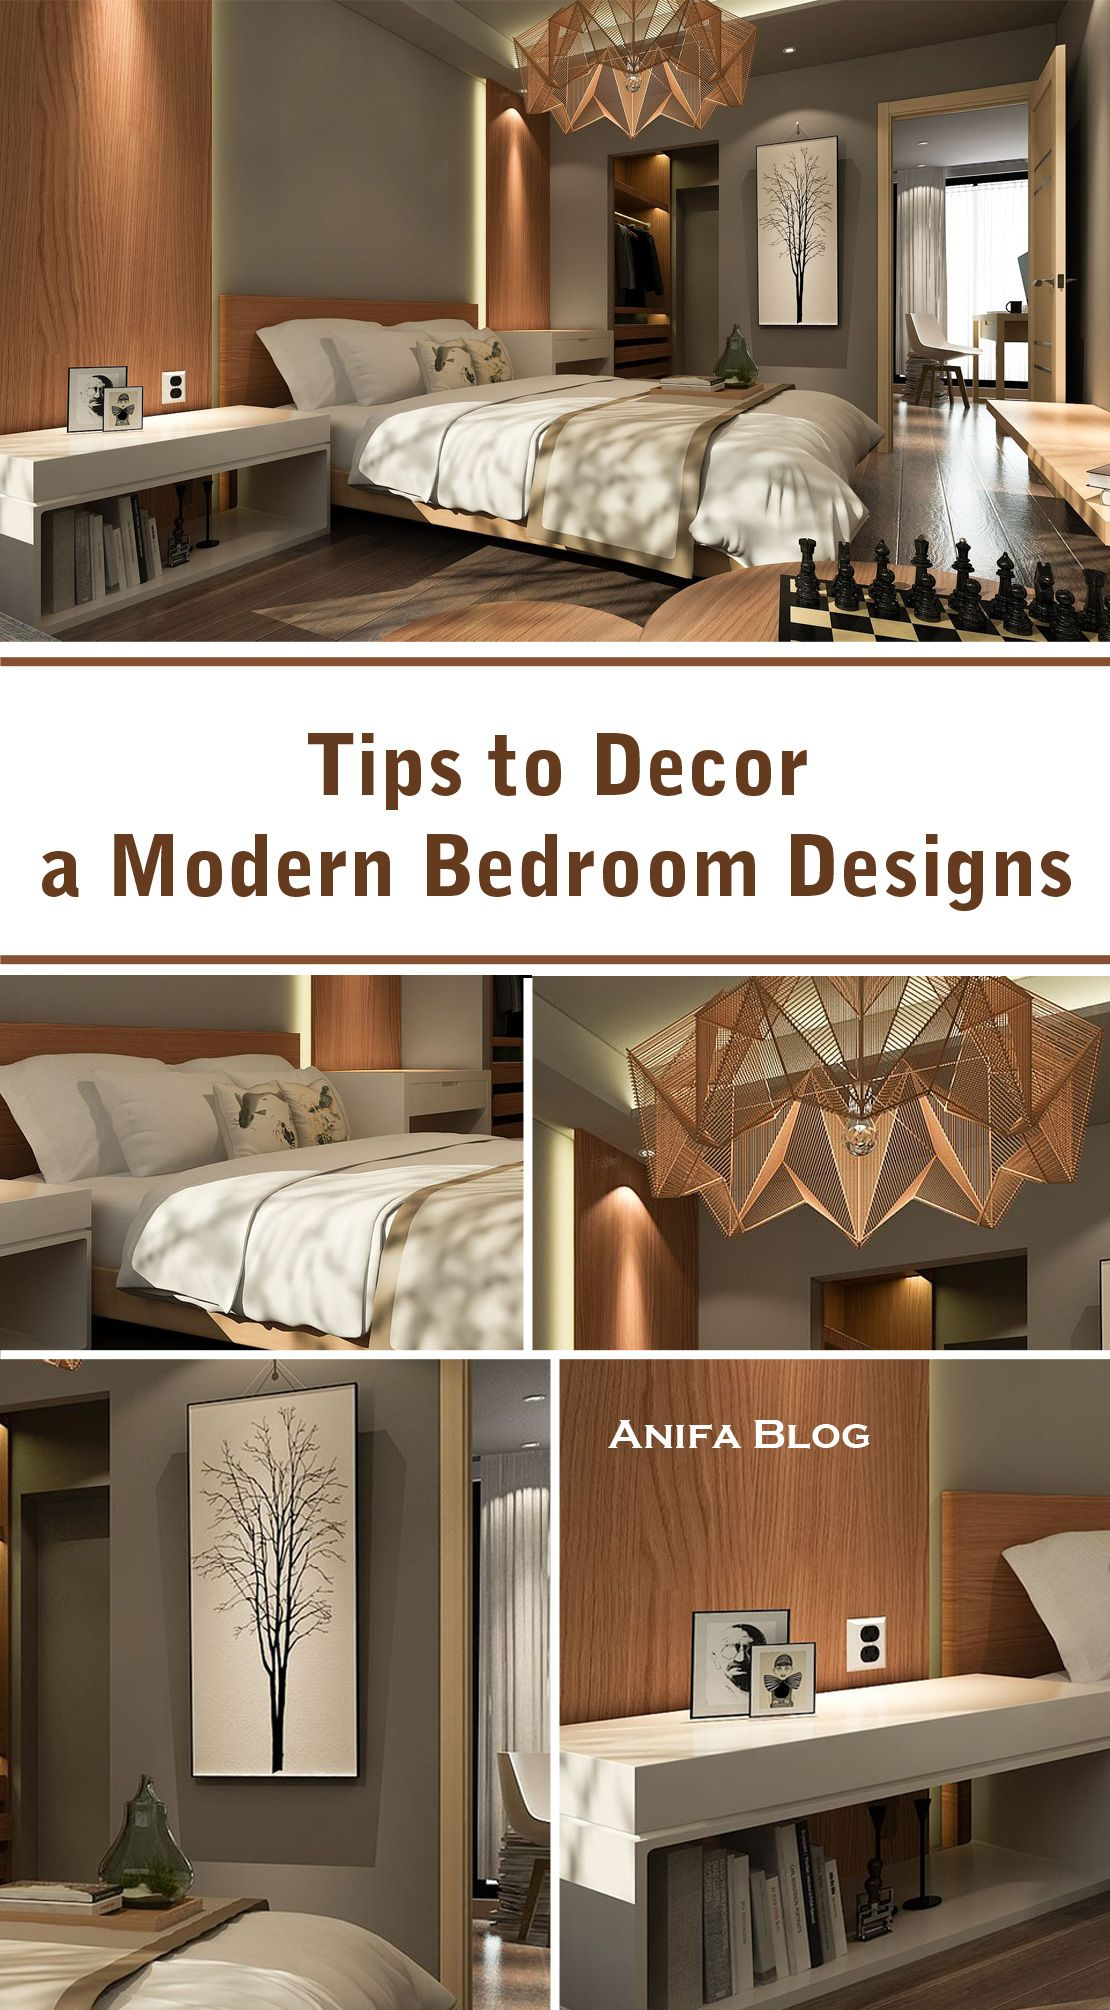 This Is A Amazing Tips And Images Of A Modern